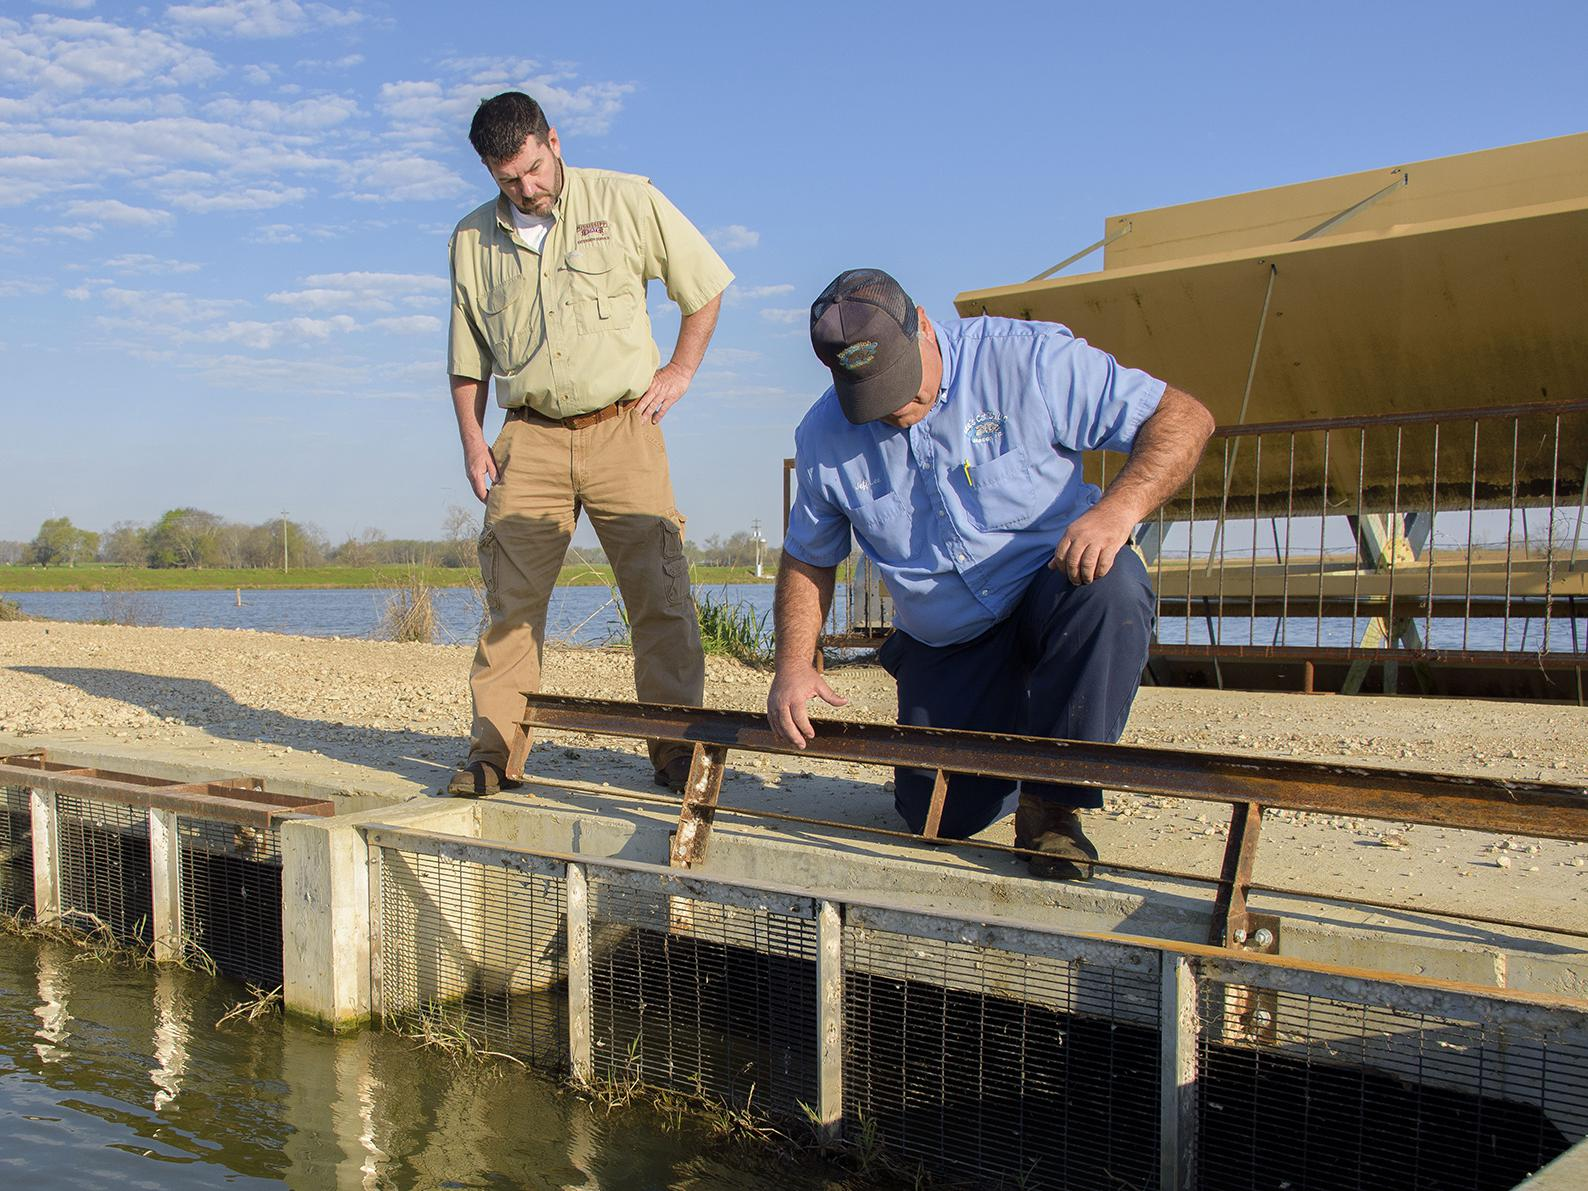 Split-cell catfish ponds circulate oxygen-rich water from the larger lagoon through channels to the smaller side where catfish grow. On March 21, 2017, Mississippi State University Extension aquaculture specialist Mark Peterman, left, and Jeff Lee of Lee's Catfish in Macon examined the fencing that contains fish in this Noxubee County catfish pond. (Photo by MSU Extension Service/Kevin Hudson)